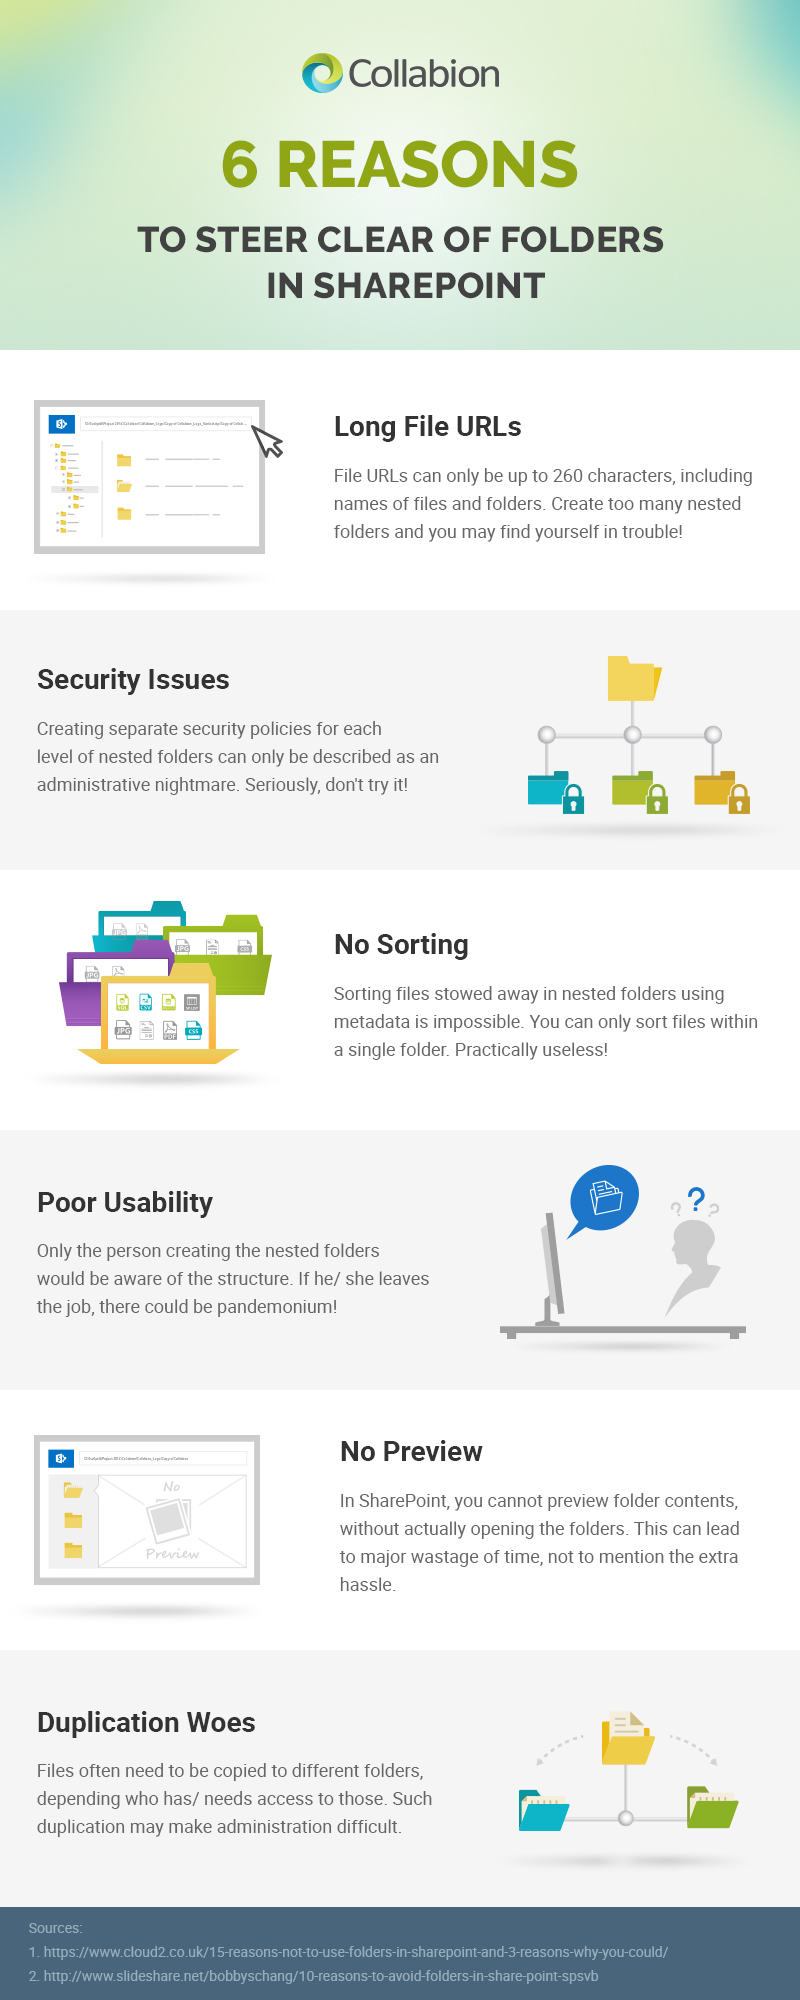 6 reasons to steer clear of folders in SharePoint infographic